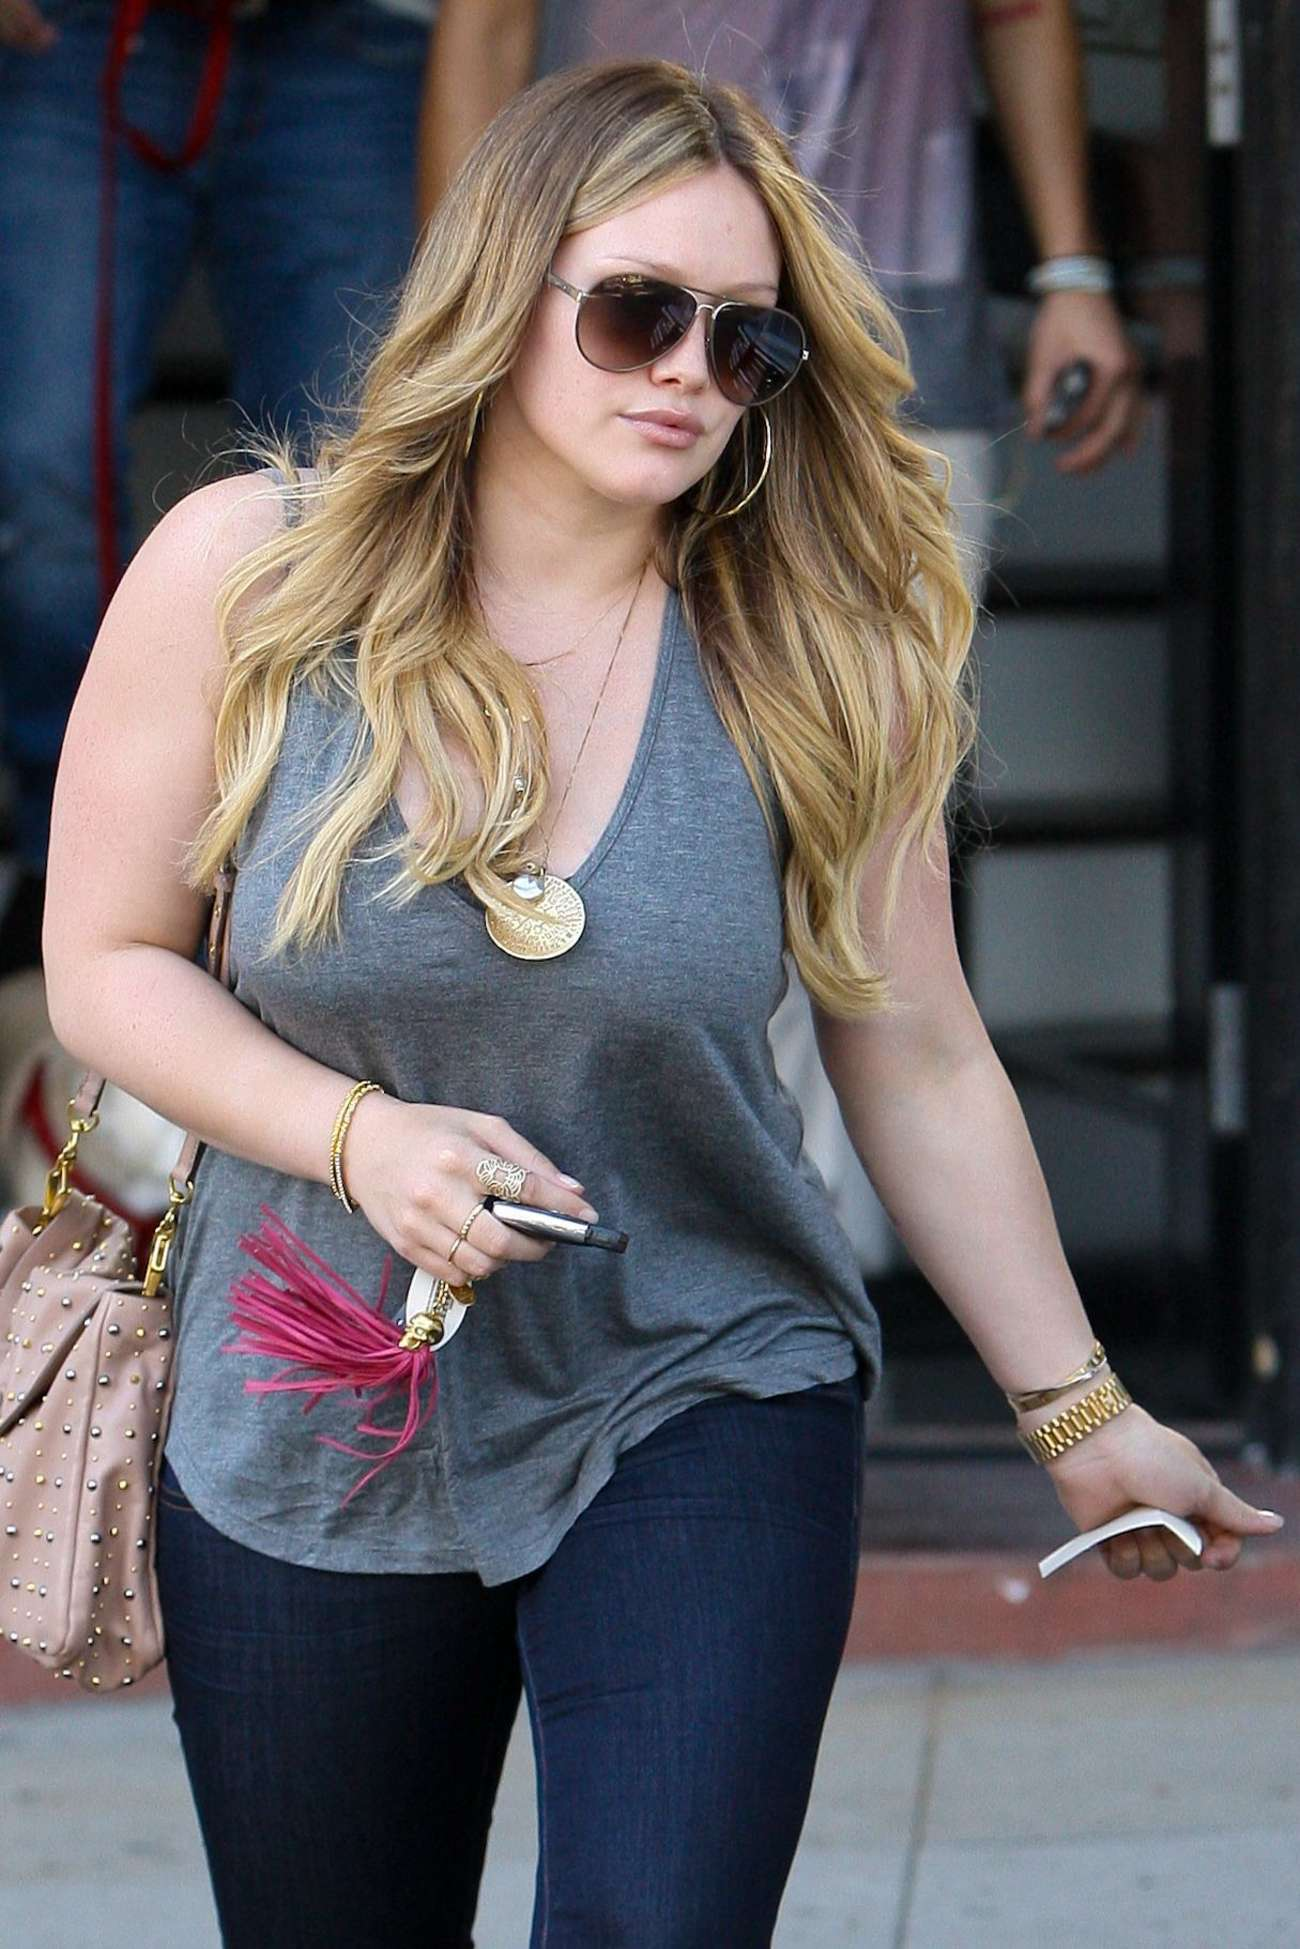 Hilary duff source